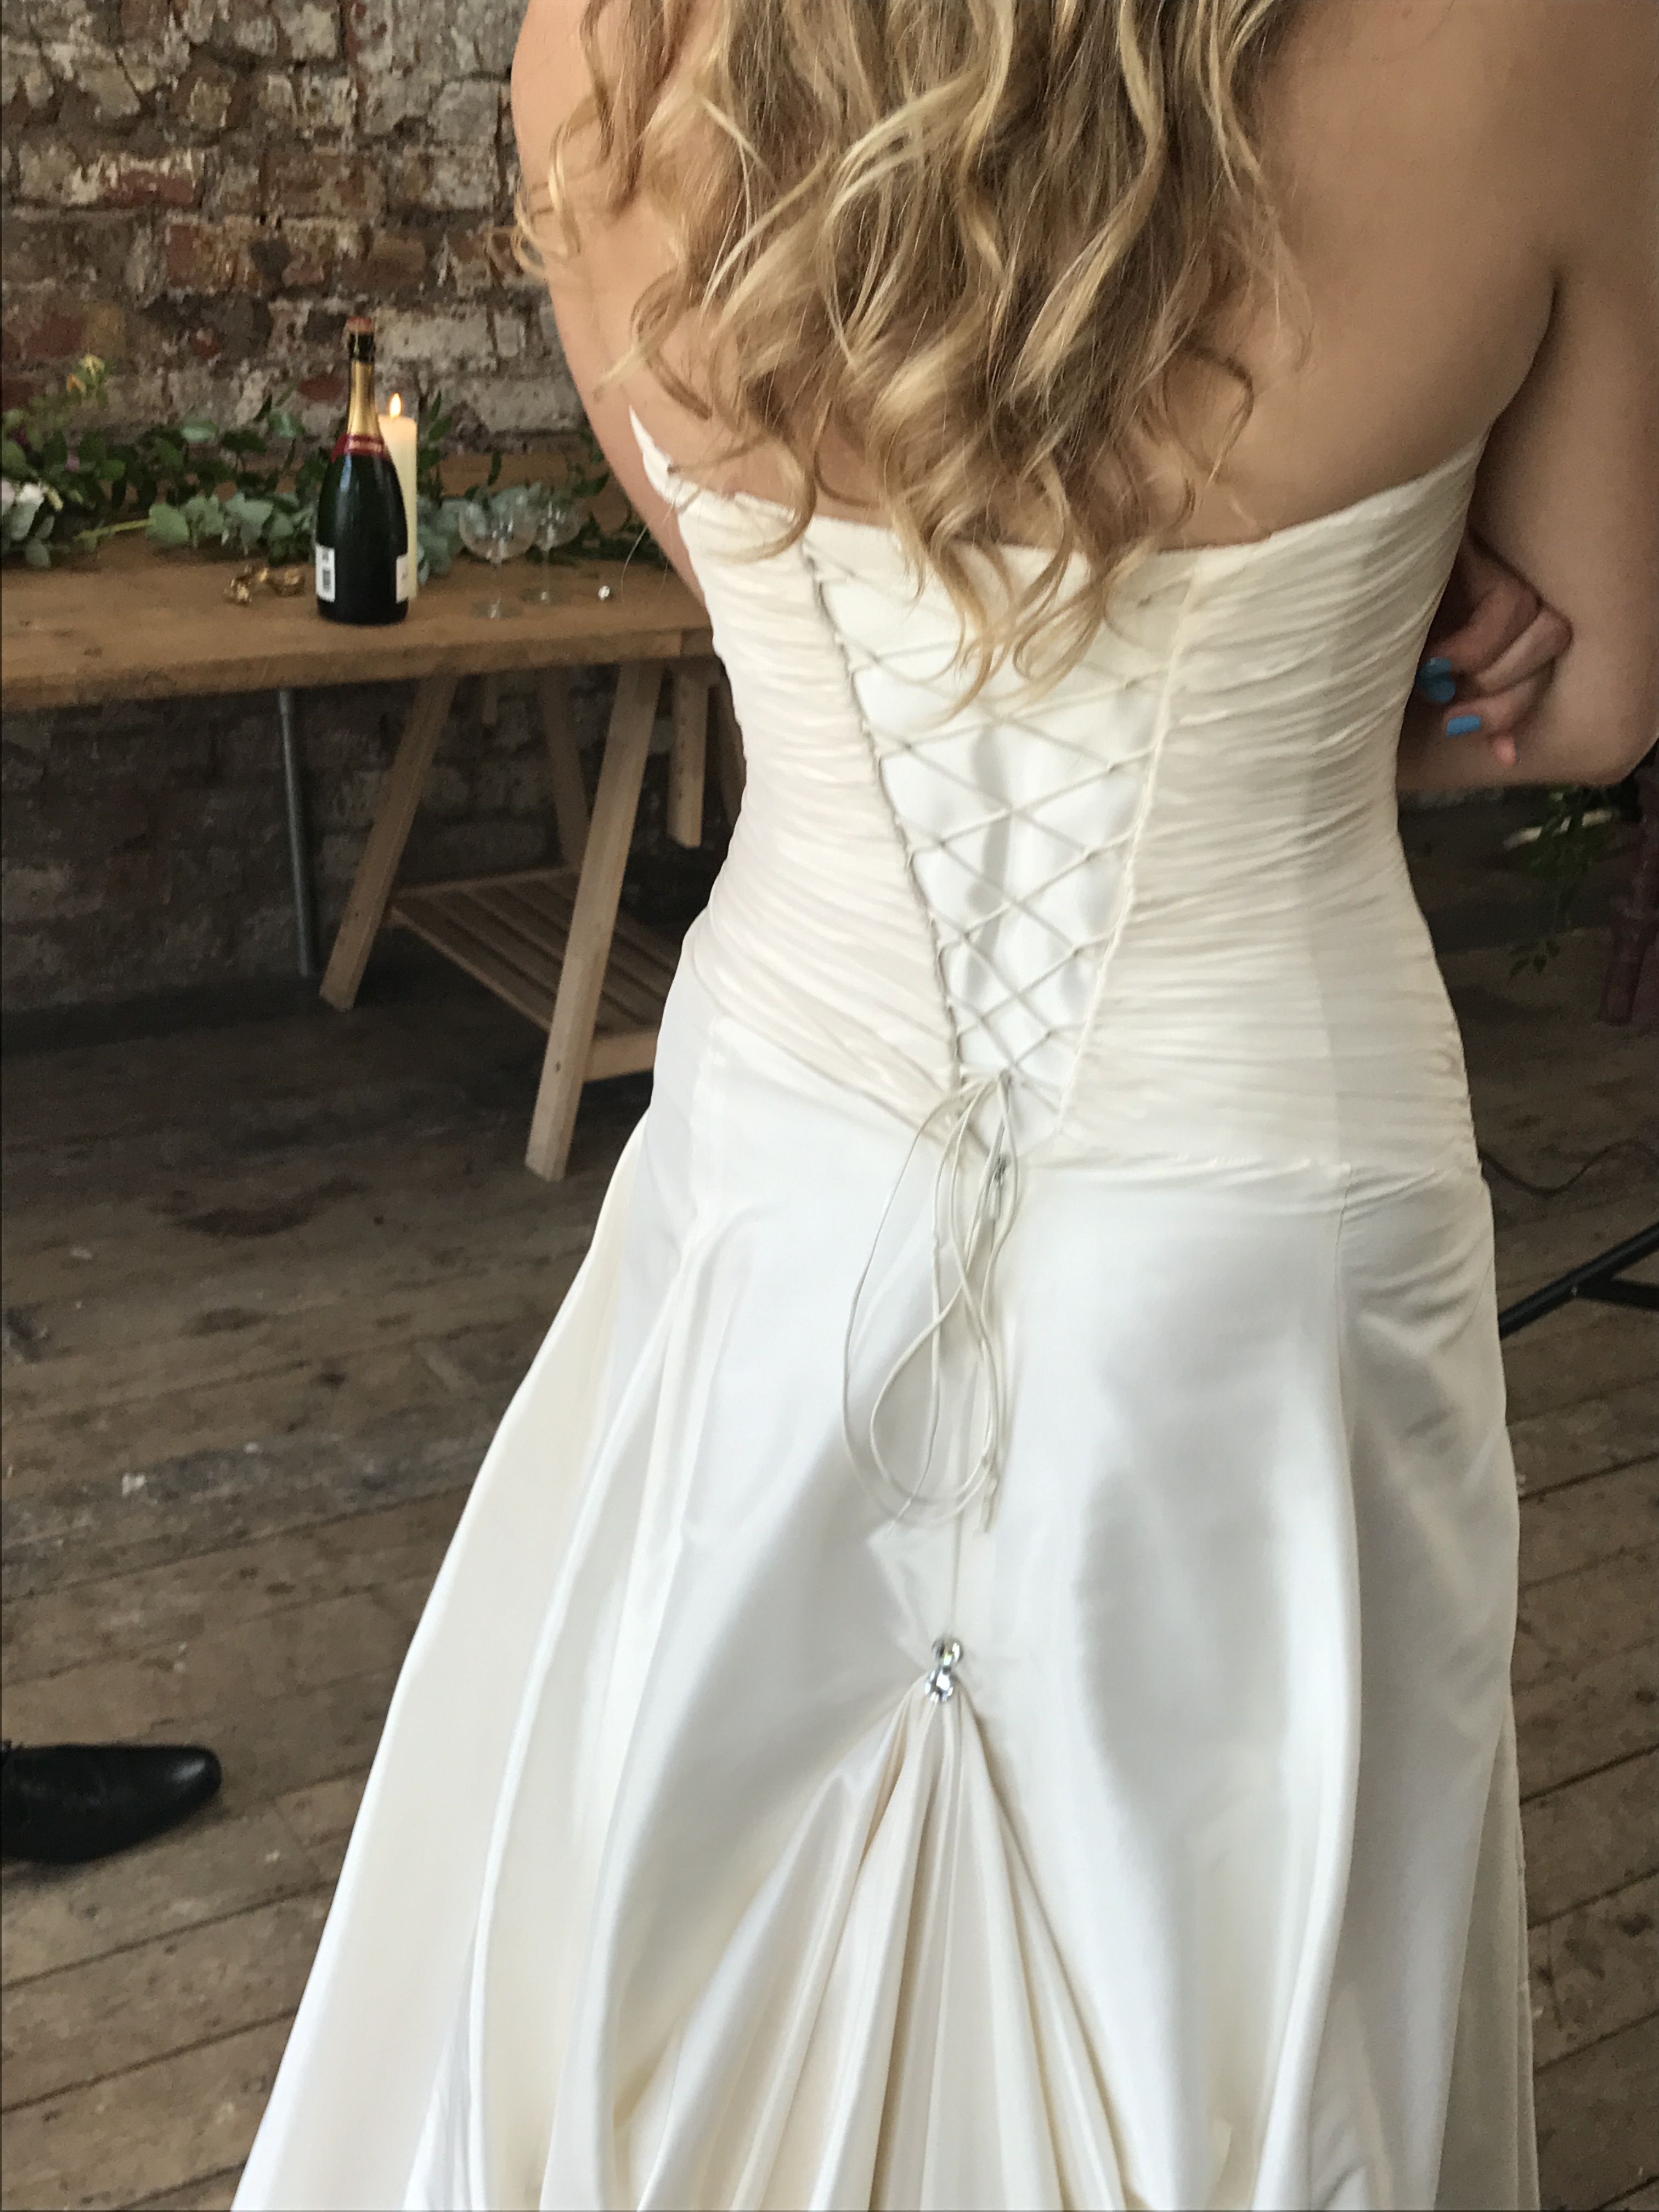 You Ve Chosen The Dress Of Your Dreams With A Beautiful Train Have You Considered How To Bustle Amazing Wedding Dress Wedding Dress Bustle